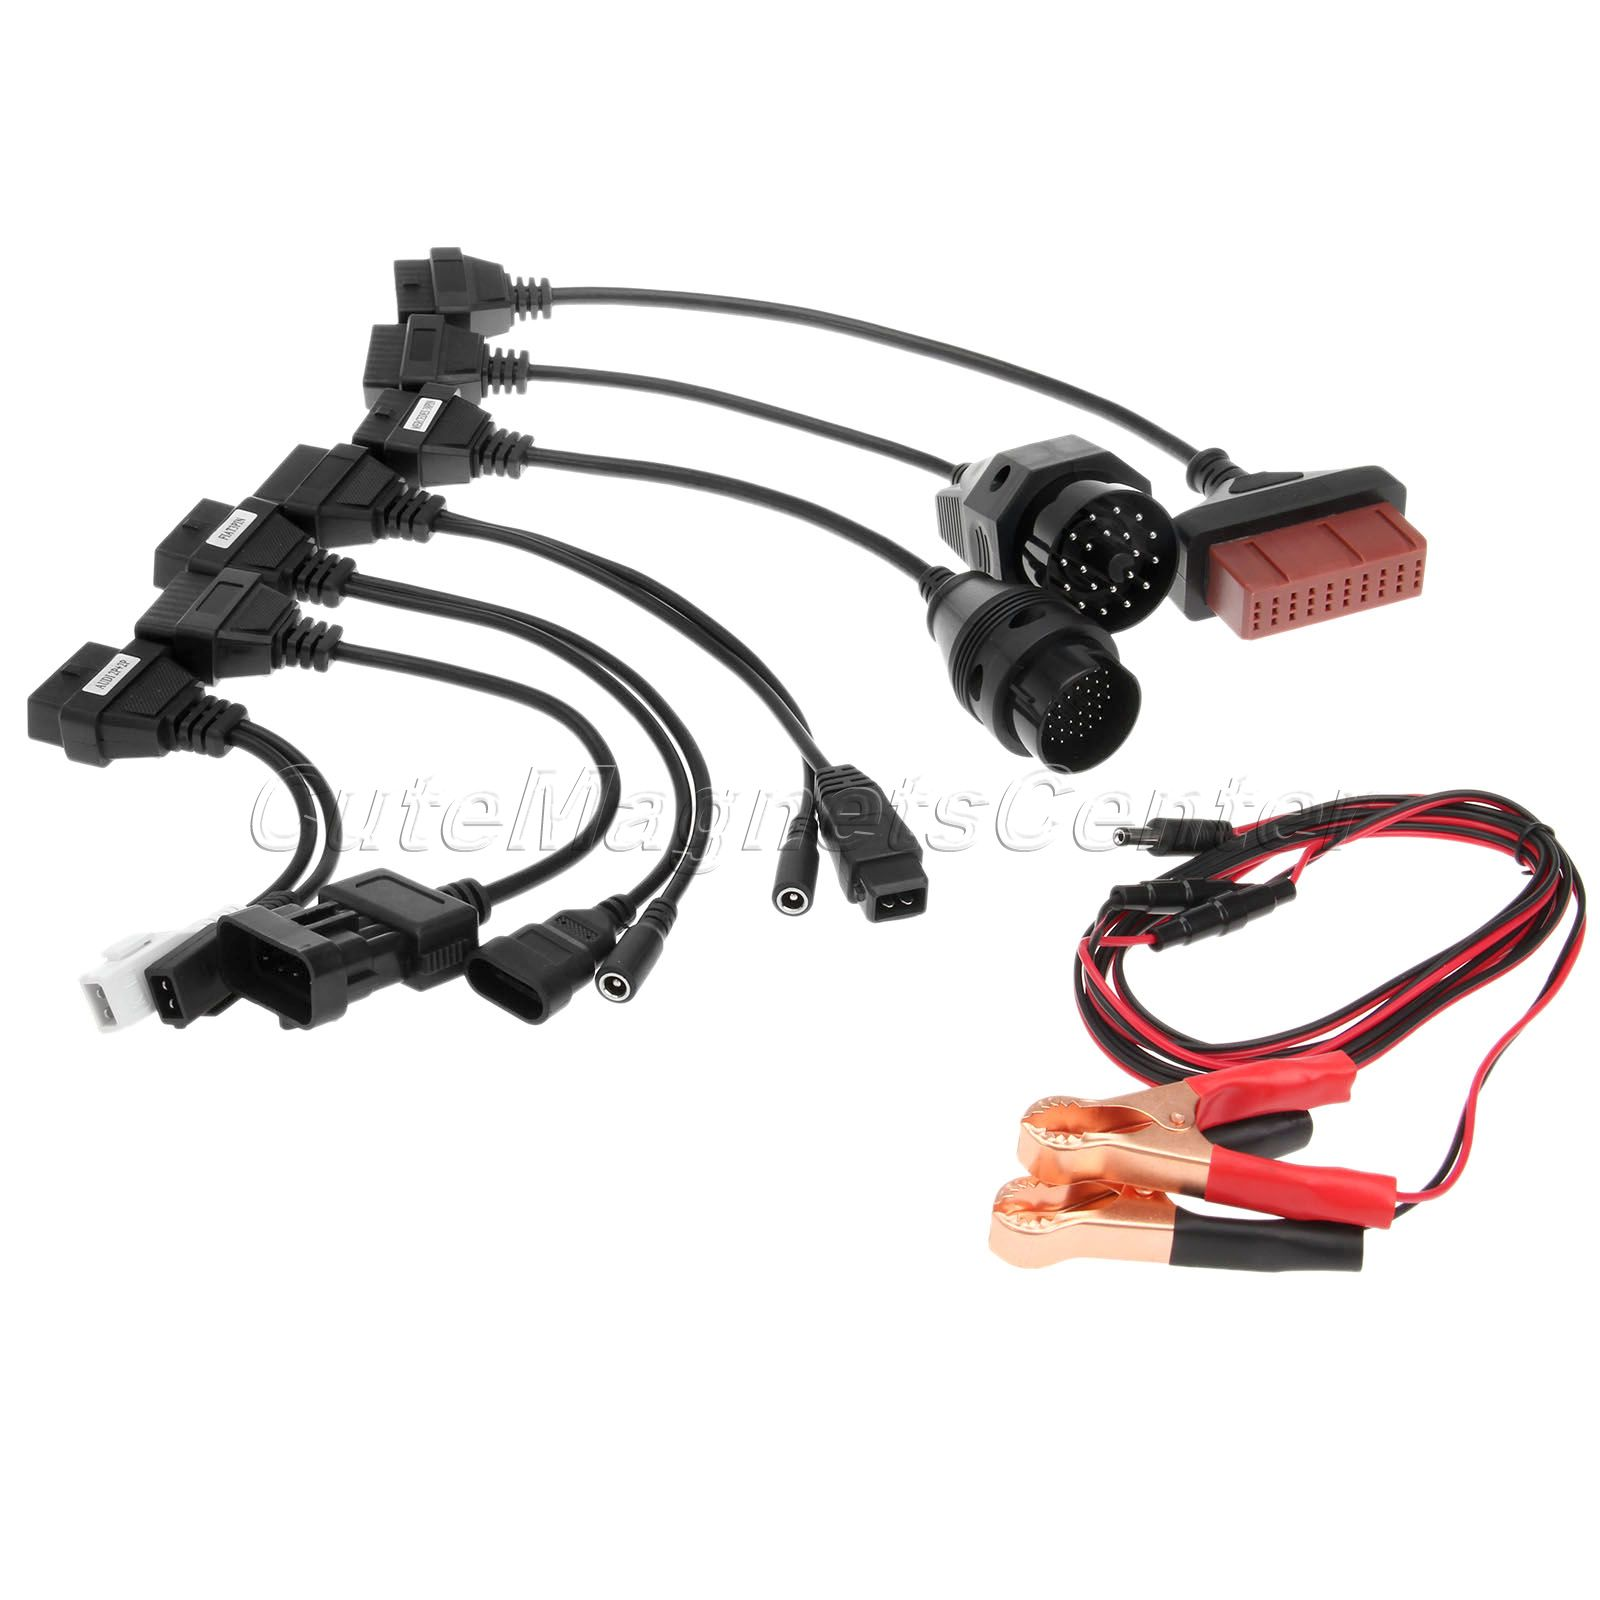 Audi Car Cable Obd Wiring Diagnostic Interface Cables For Benz Fiat Pro Scanner Cars